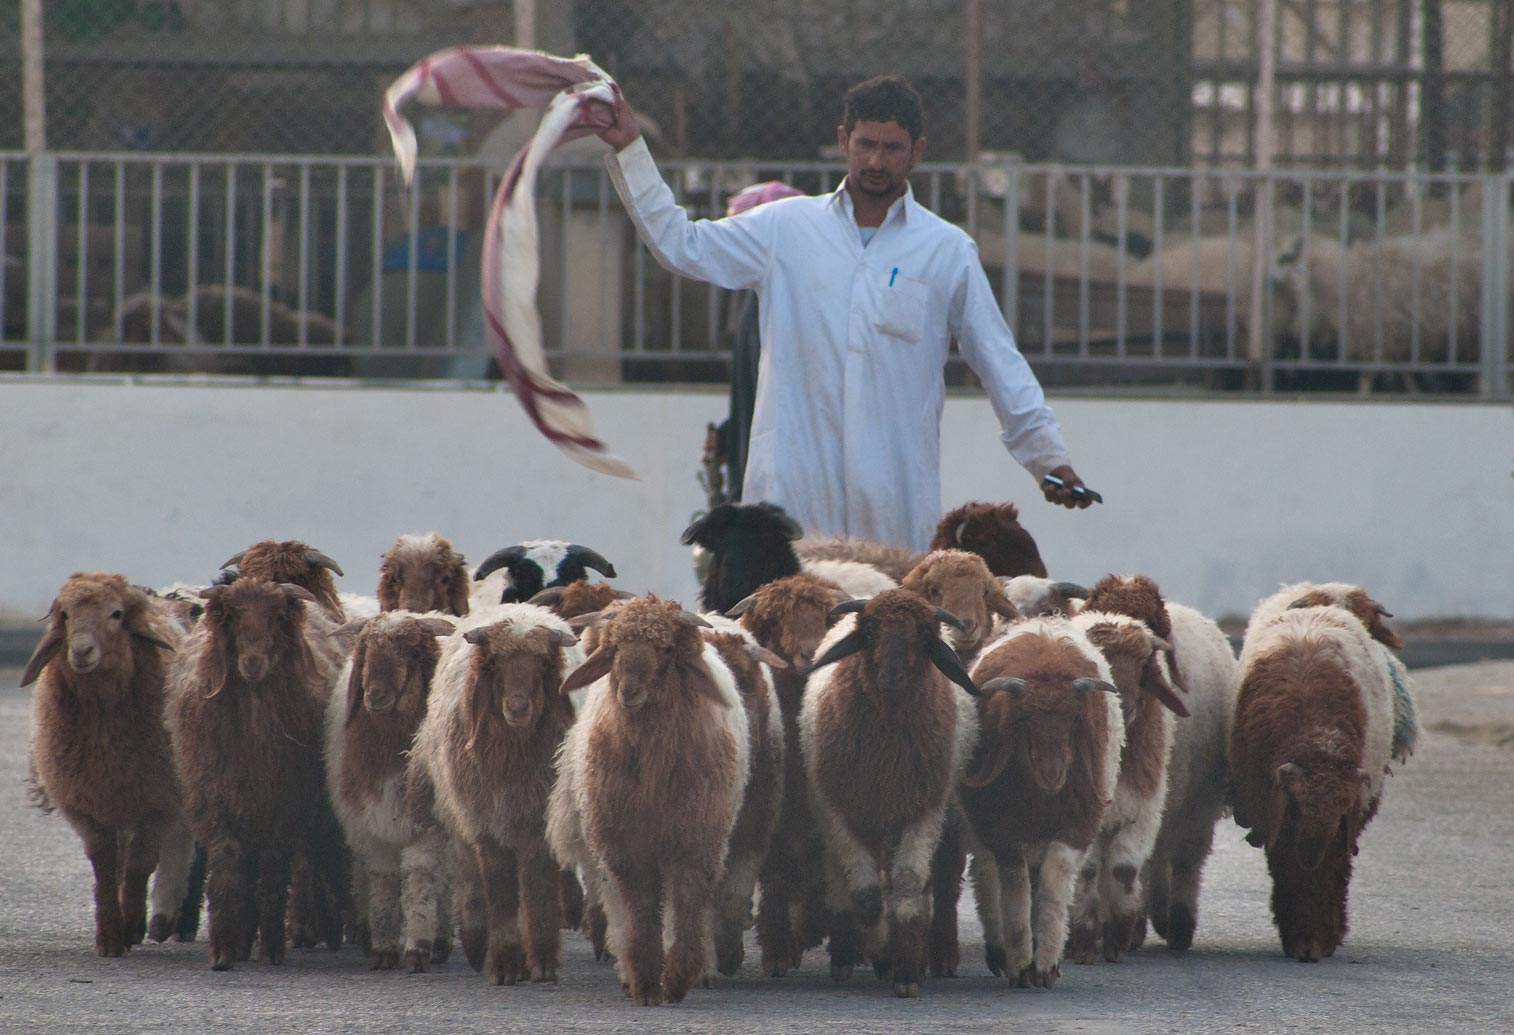 Herd of sheep in Animal Market, Wholesale Markets area. Doha, Qatar